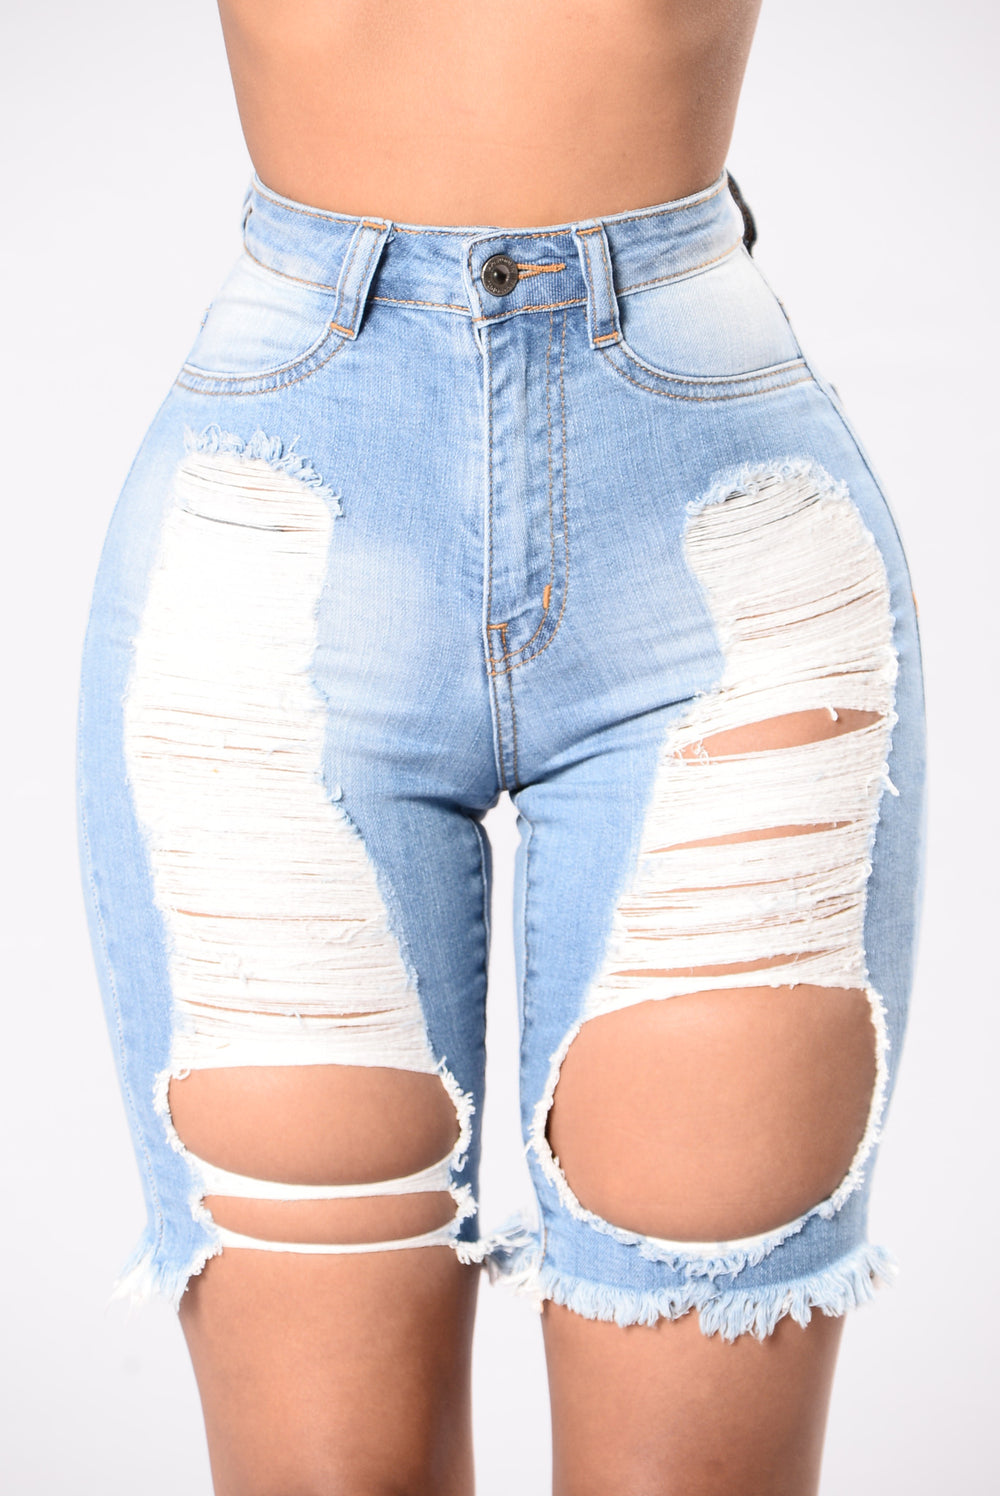 Your Main Attraction Shorts - Light Wash